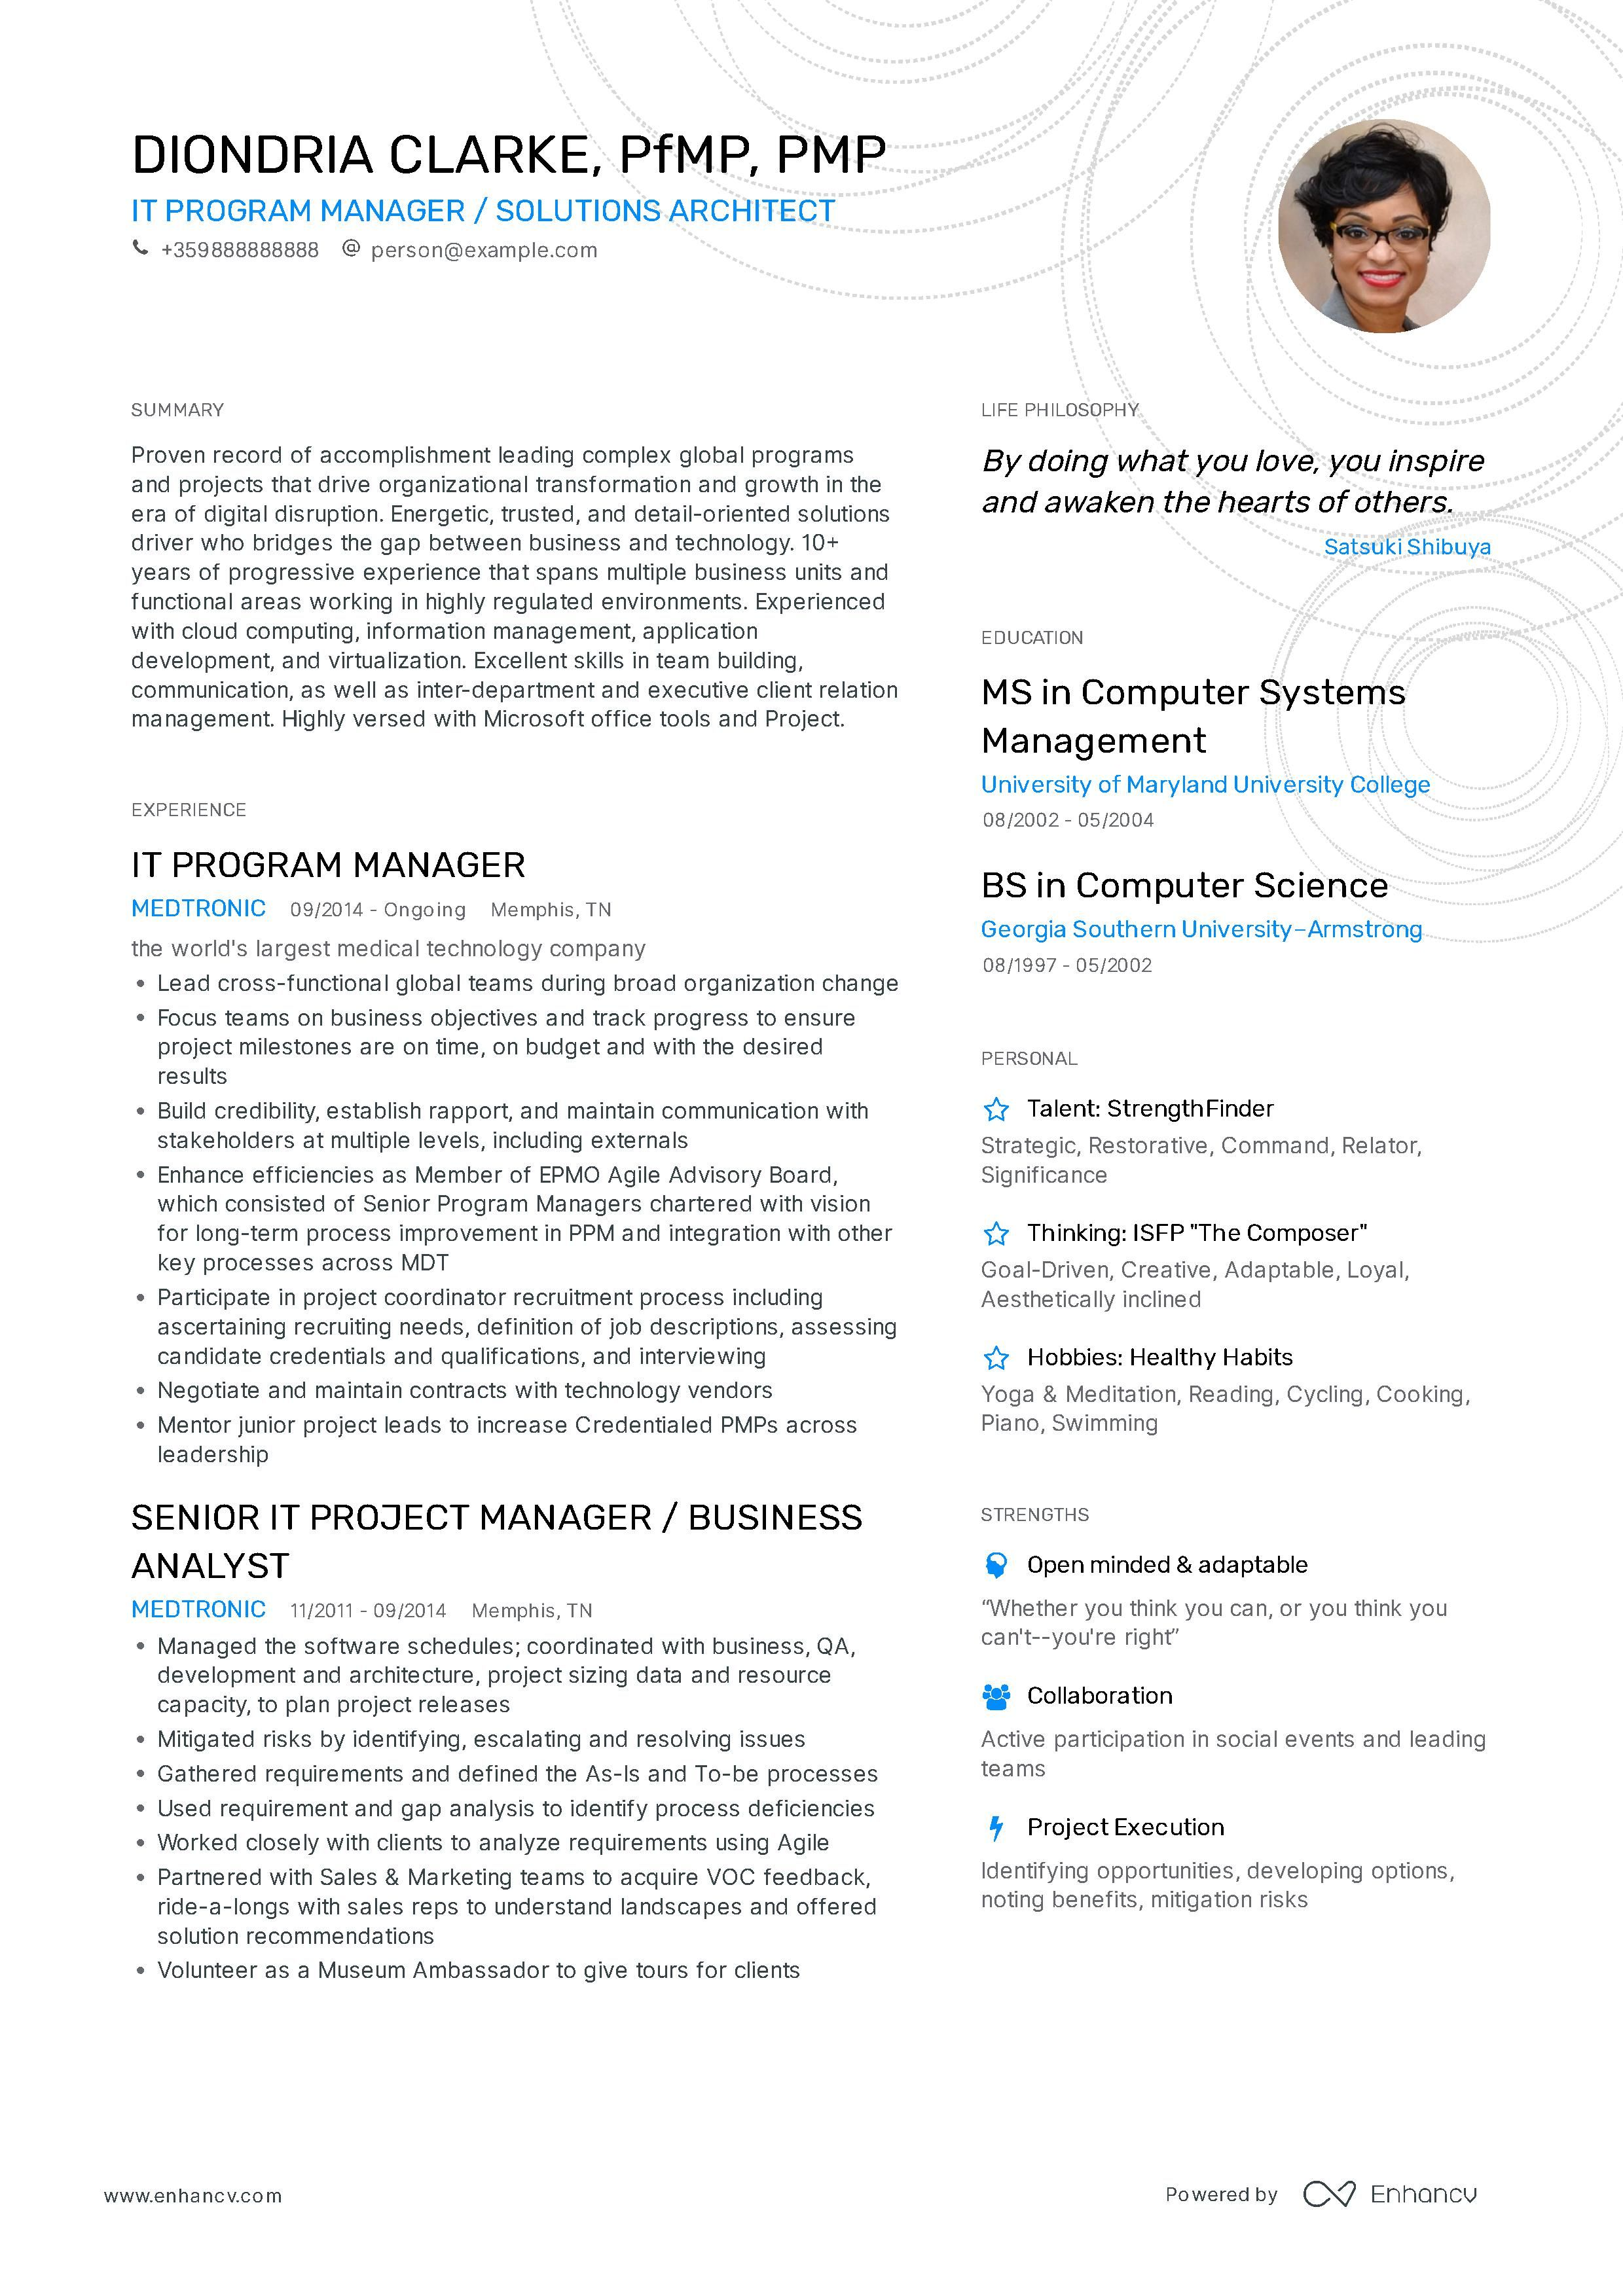 Program Manager Resume Example And Guide For 2019 Resume Examples Programme Manager Manager Resume